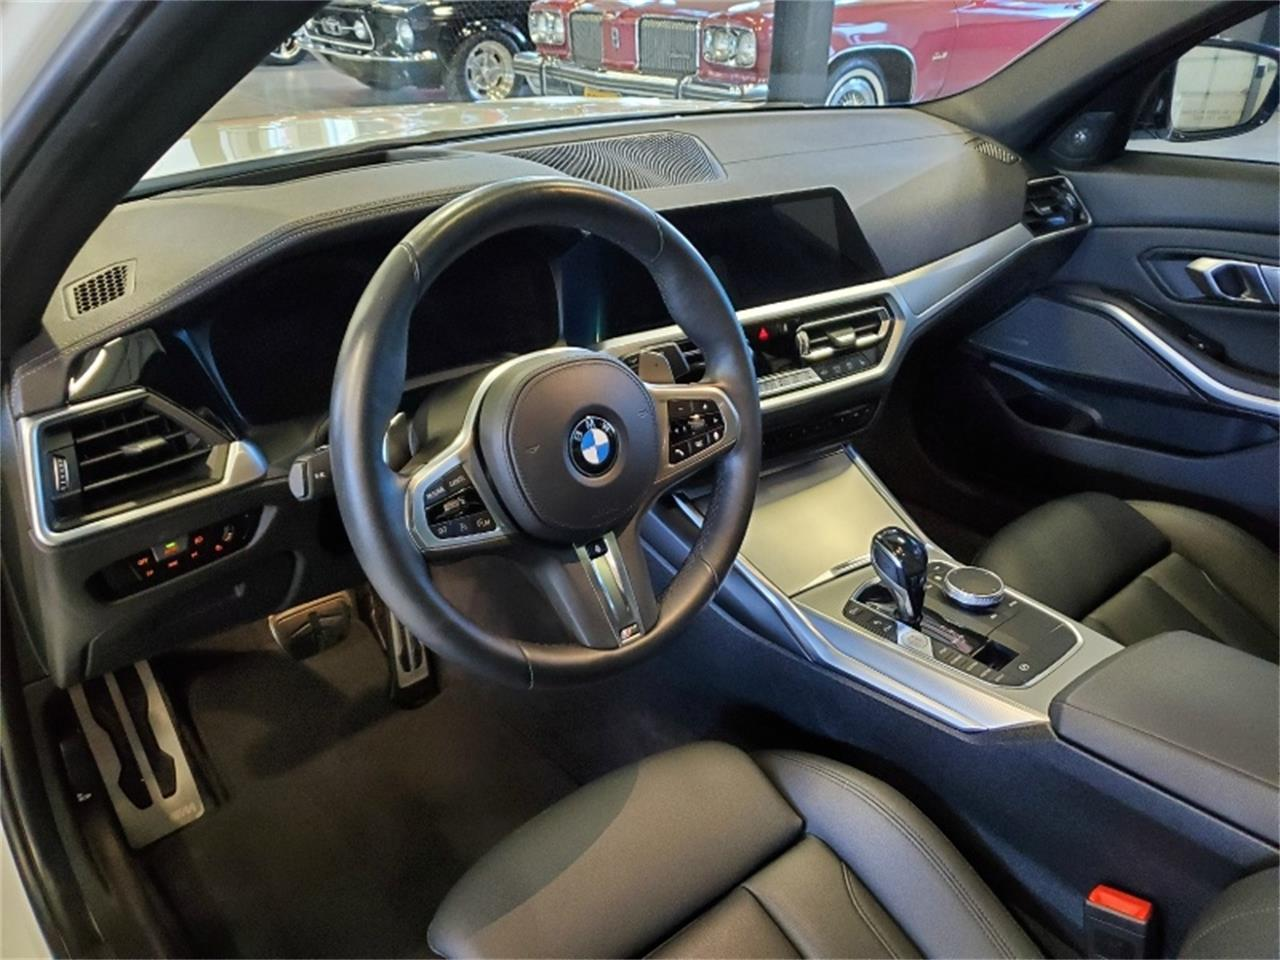 2020 BMW 3 Series (CC-1360809) for sale in Bend, Oregon